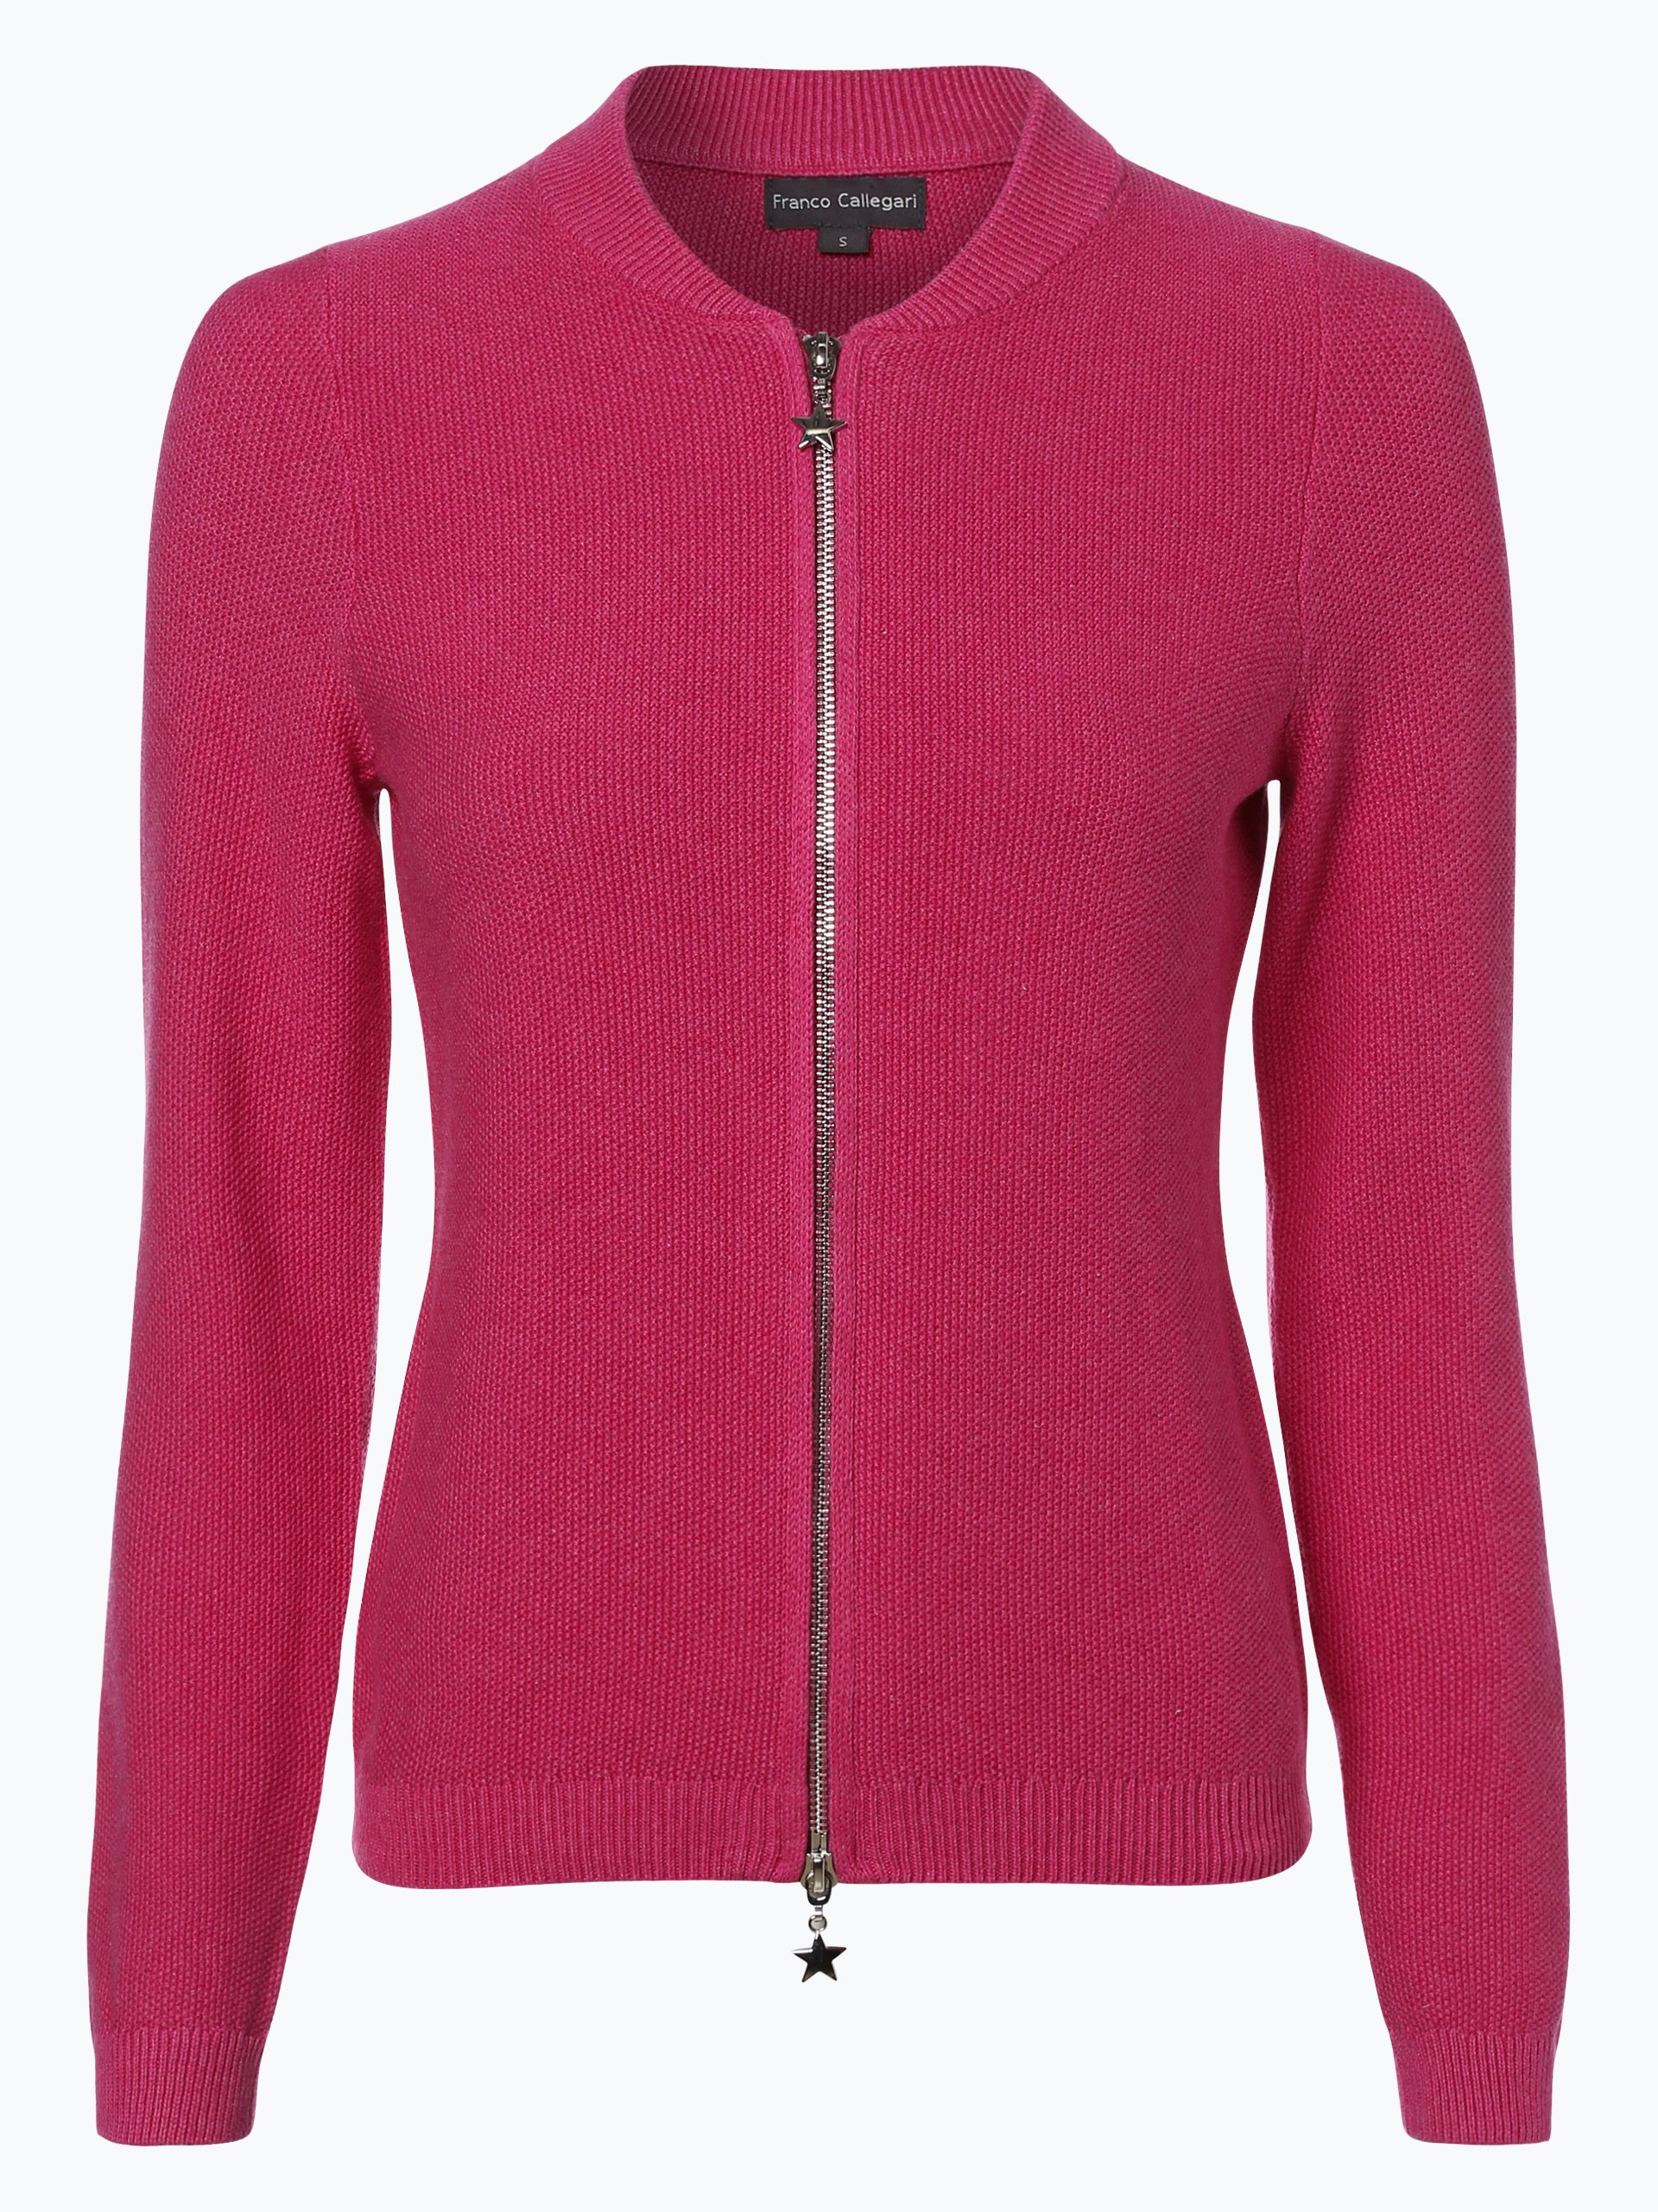 Franco Callegari Damen Strickjacke